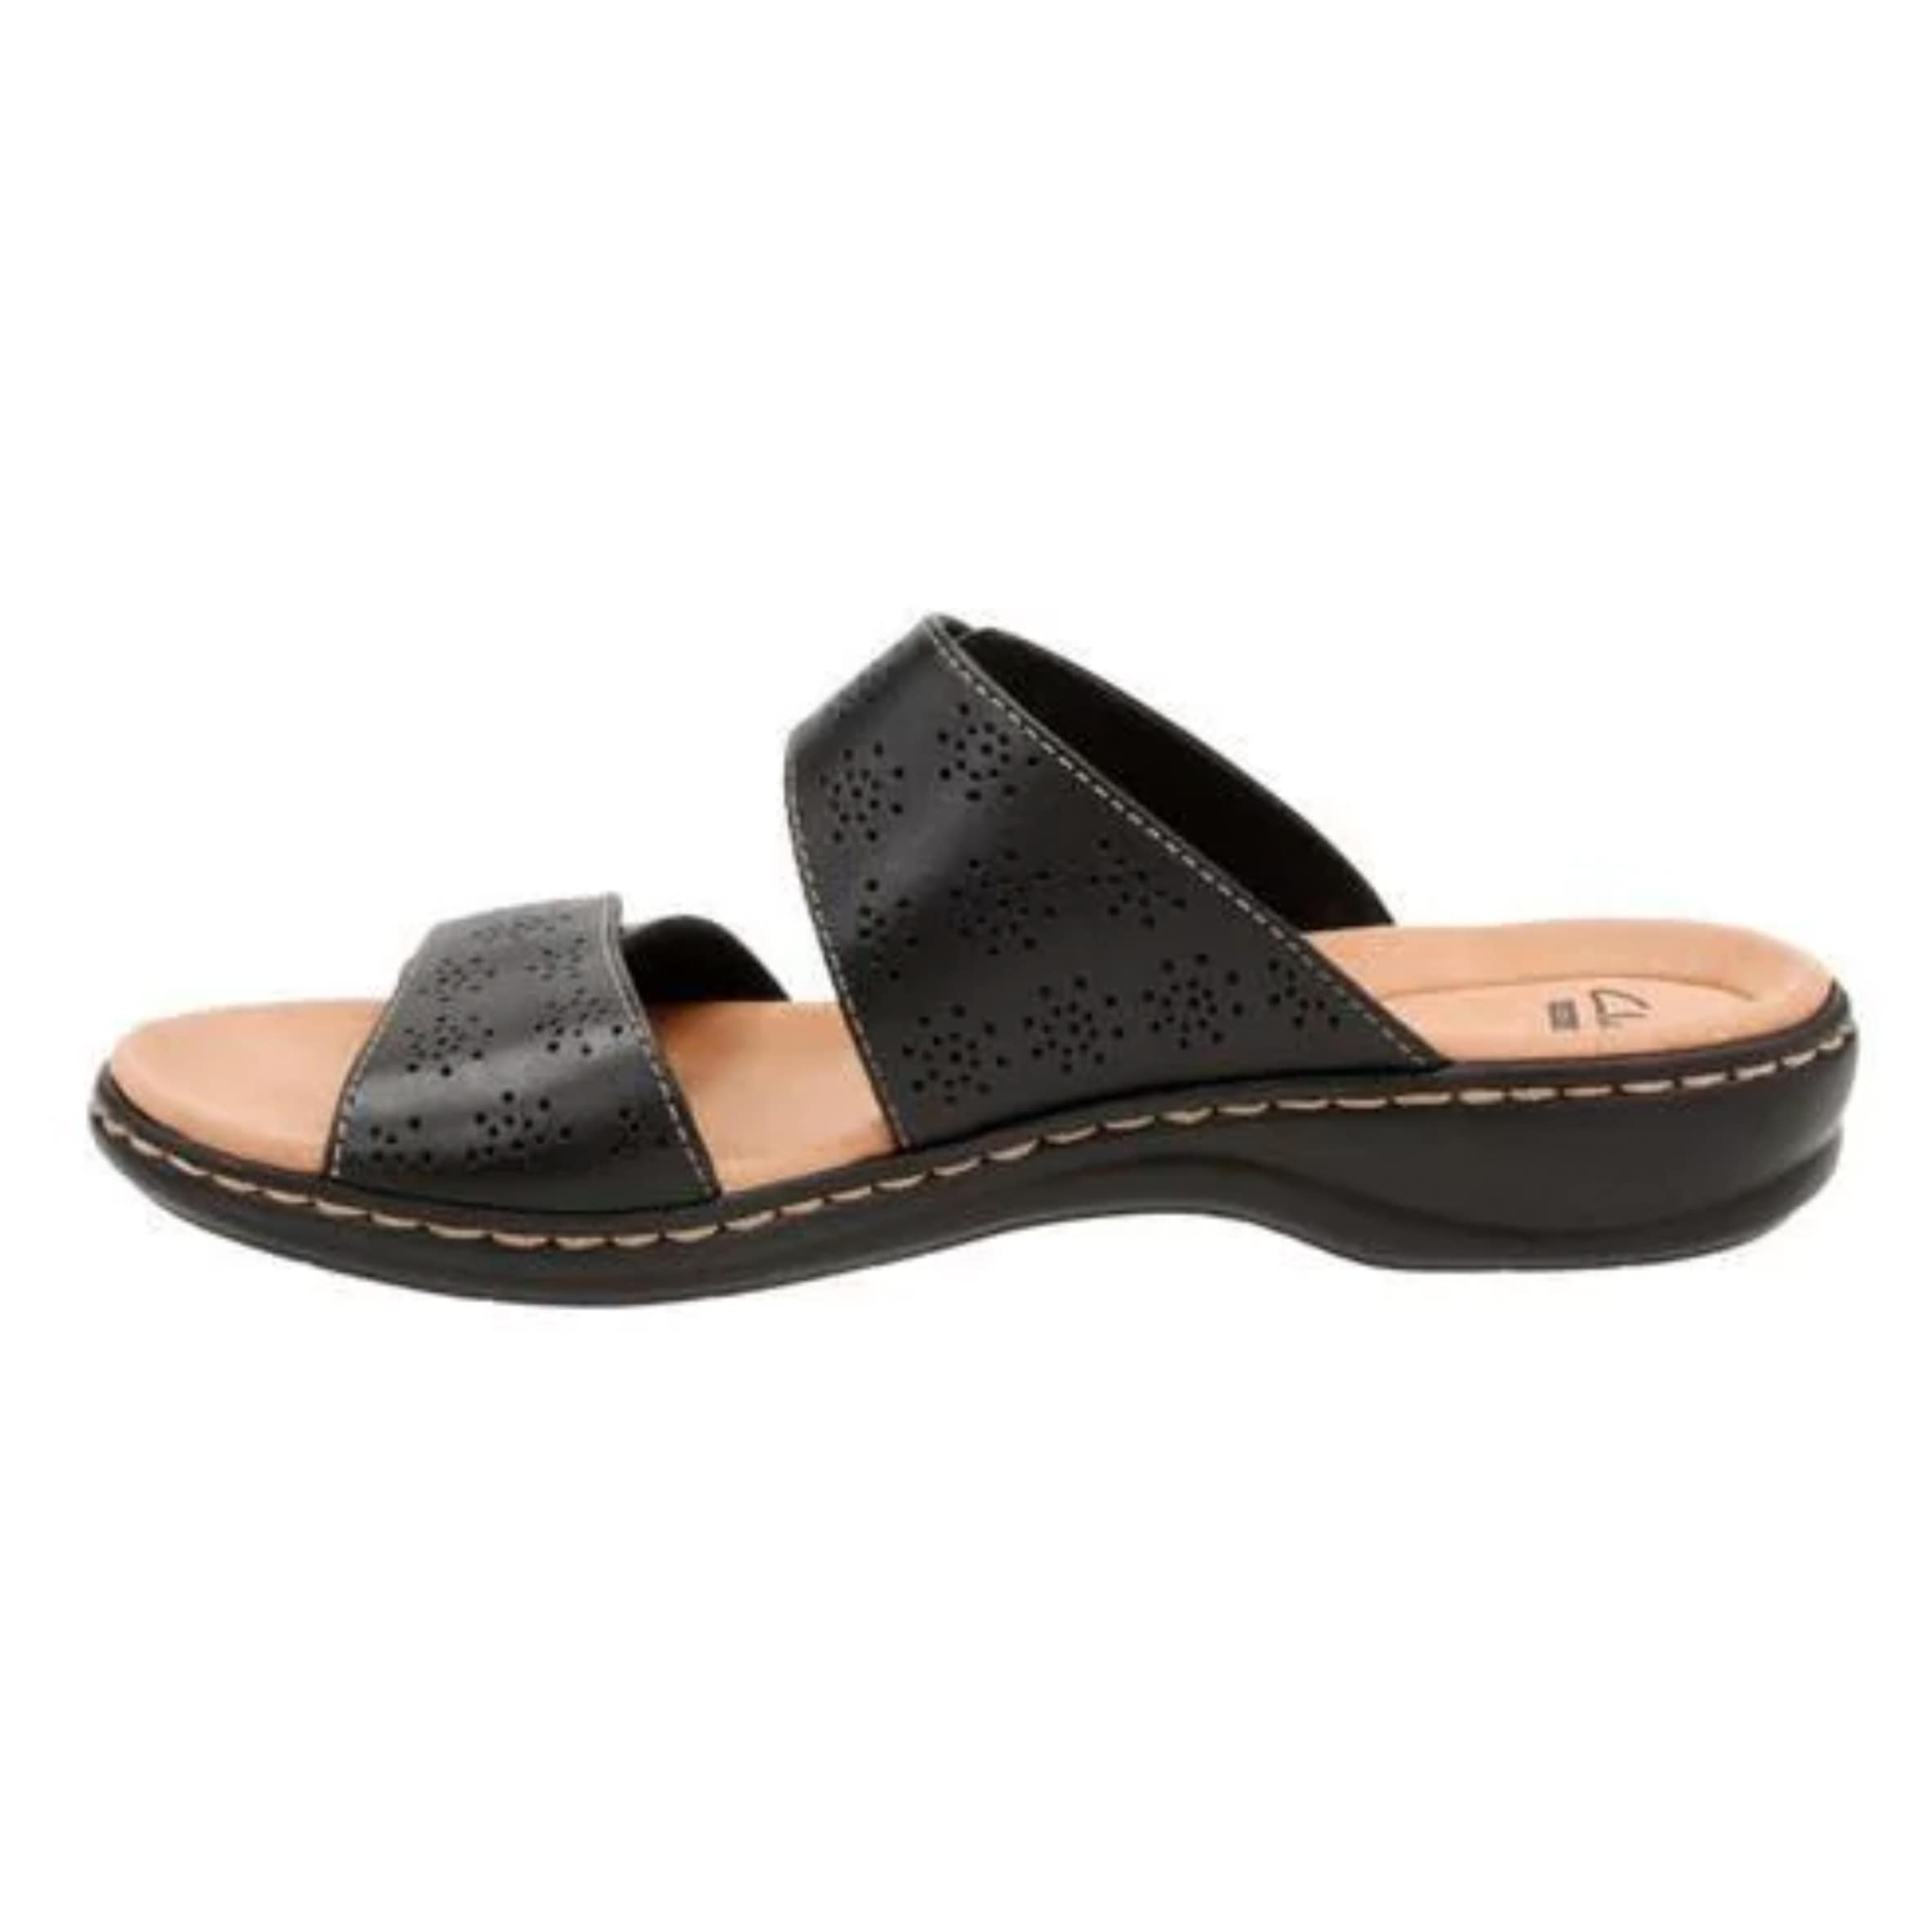 105d2145e36 Shop Women s Clarks Leisa Lacole Slide Black Leather - Free Shipping Today  - Overstock - 14165544